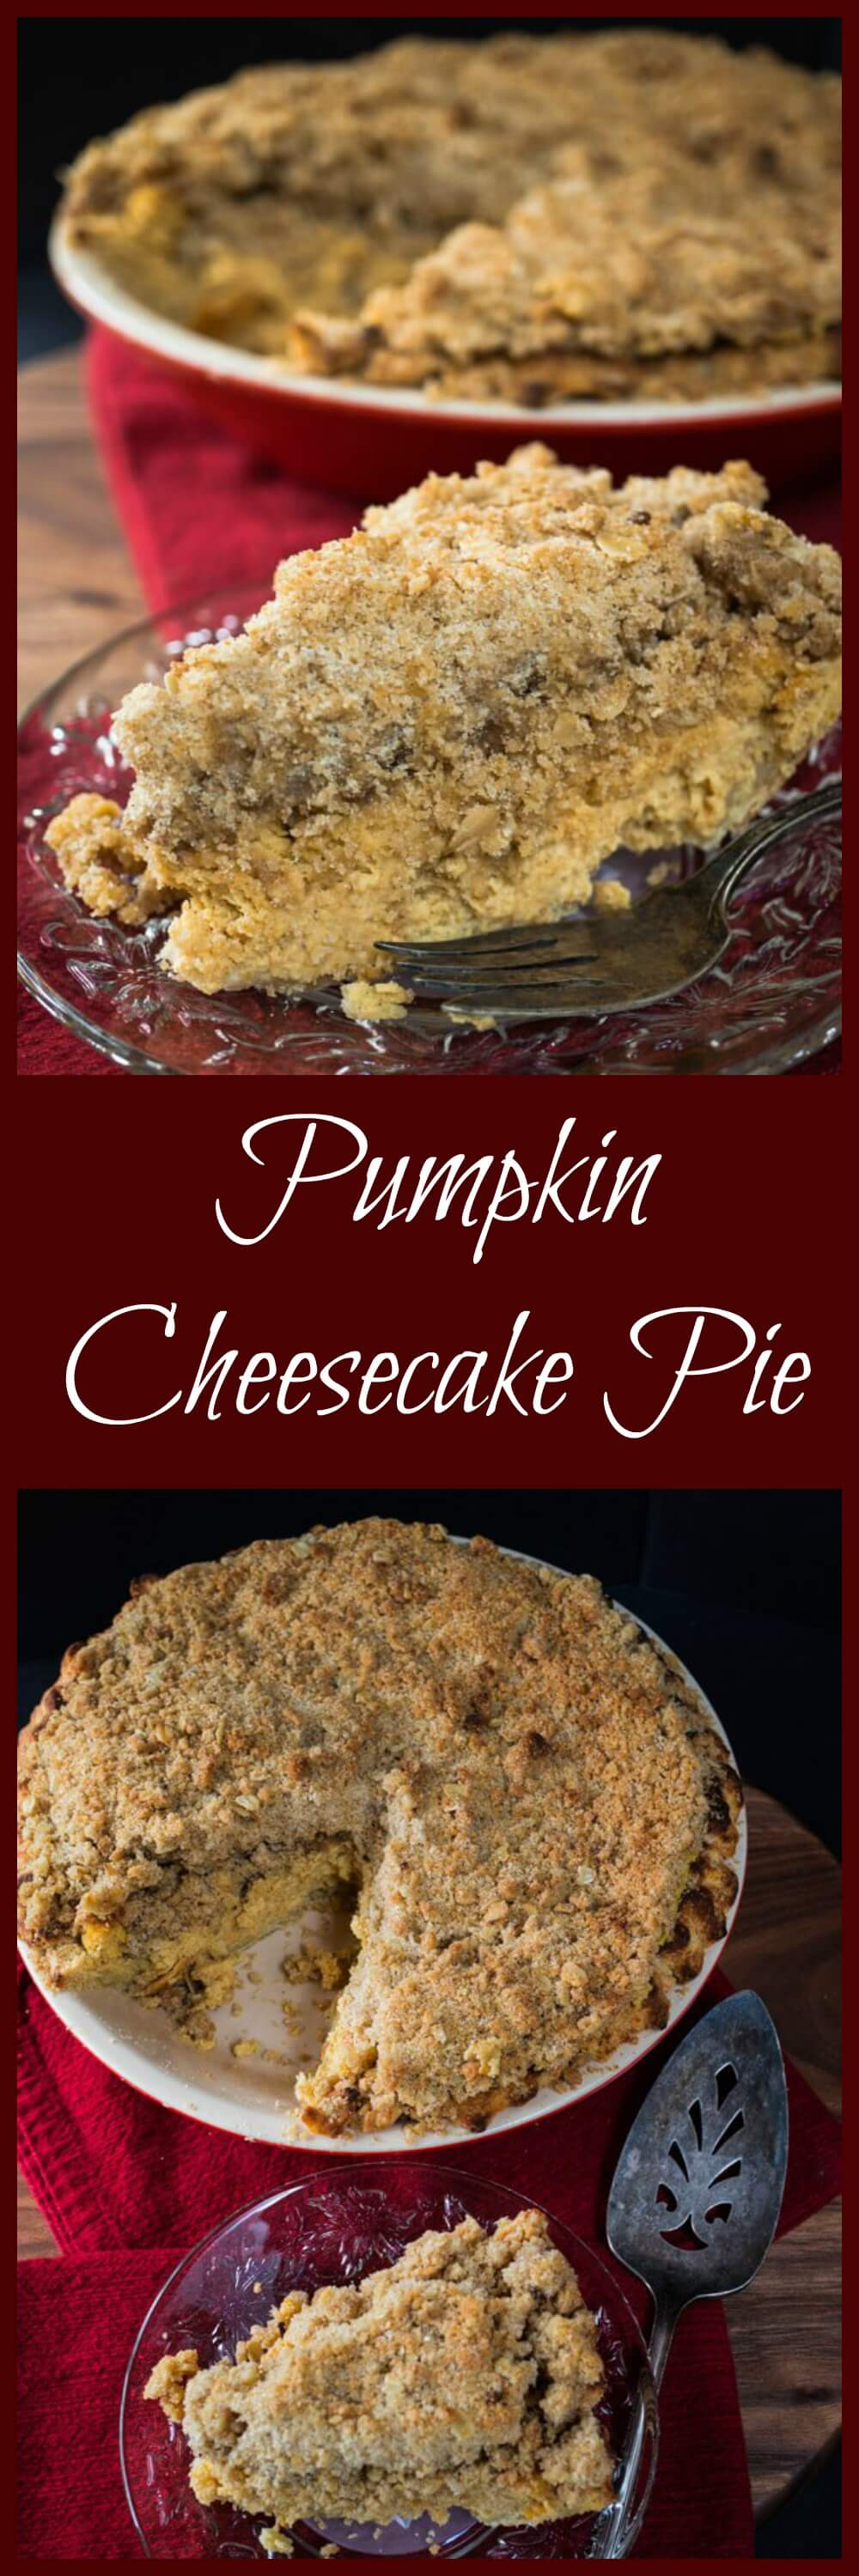 This rich and creamy Pumpkin Cheesecake Pie sits on a buttery homemade crust and topped with a mouth-watering buttery brown sugar crumble. This is one special pie perfect for the holidays. | HostessAtHeart.com